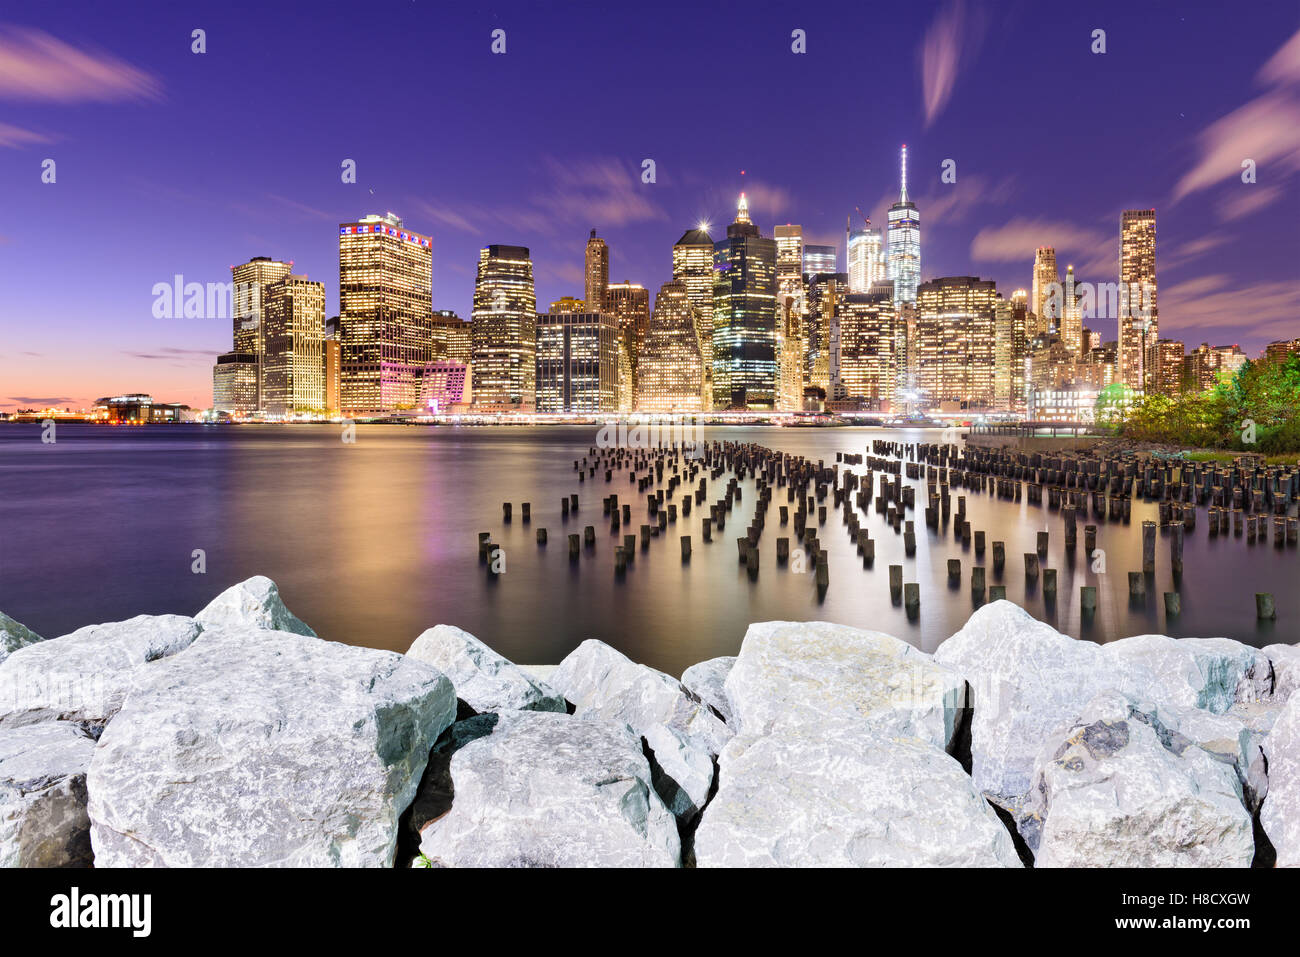 New York City downtown skyline on the East River. - Stock Image